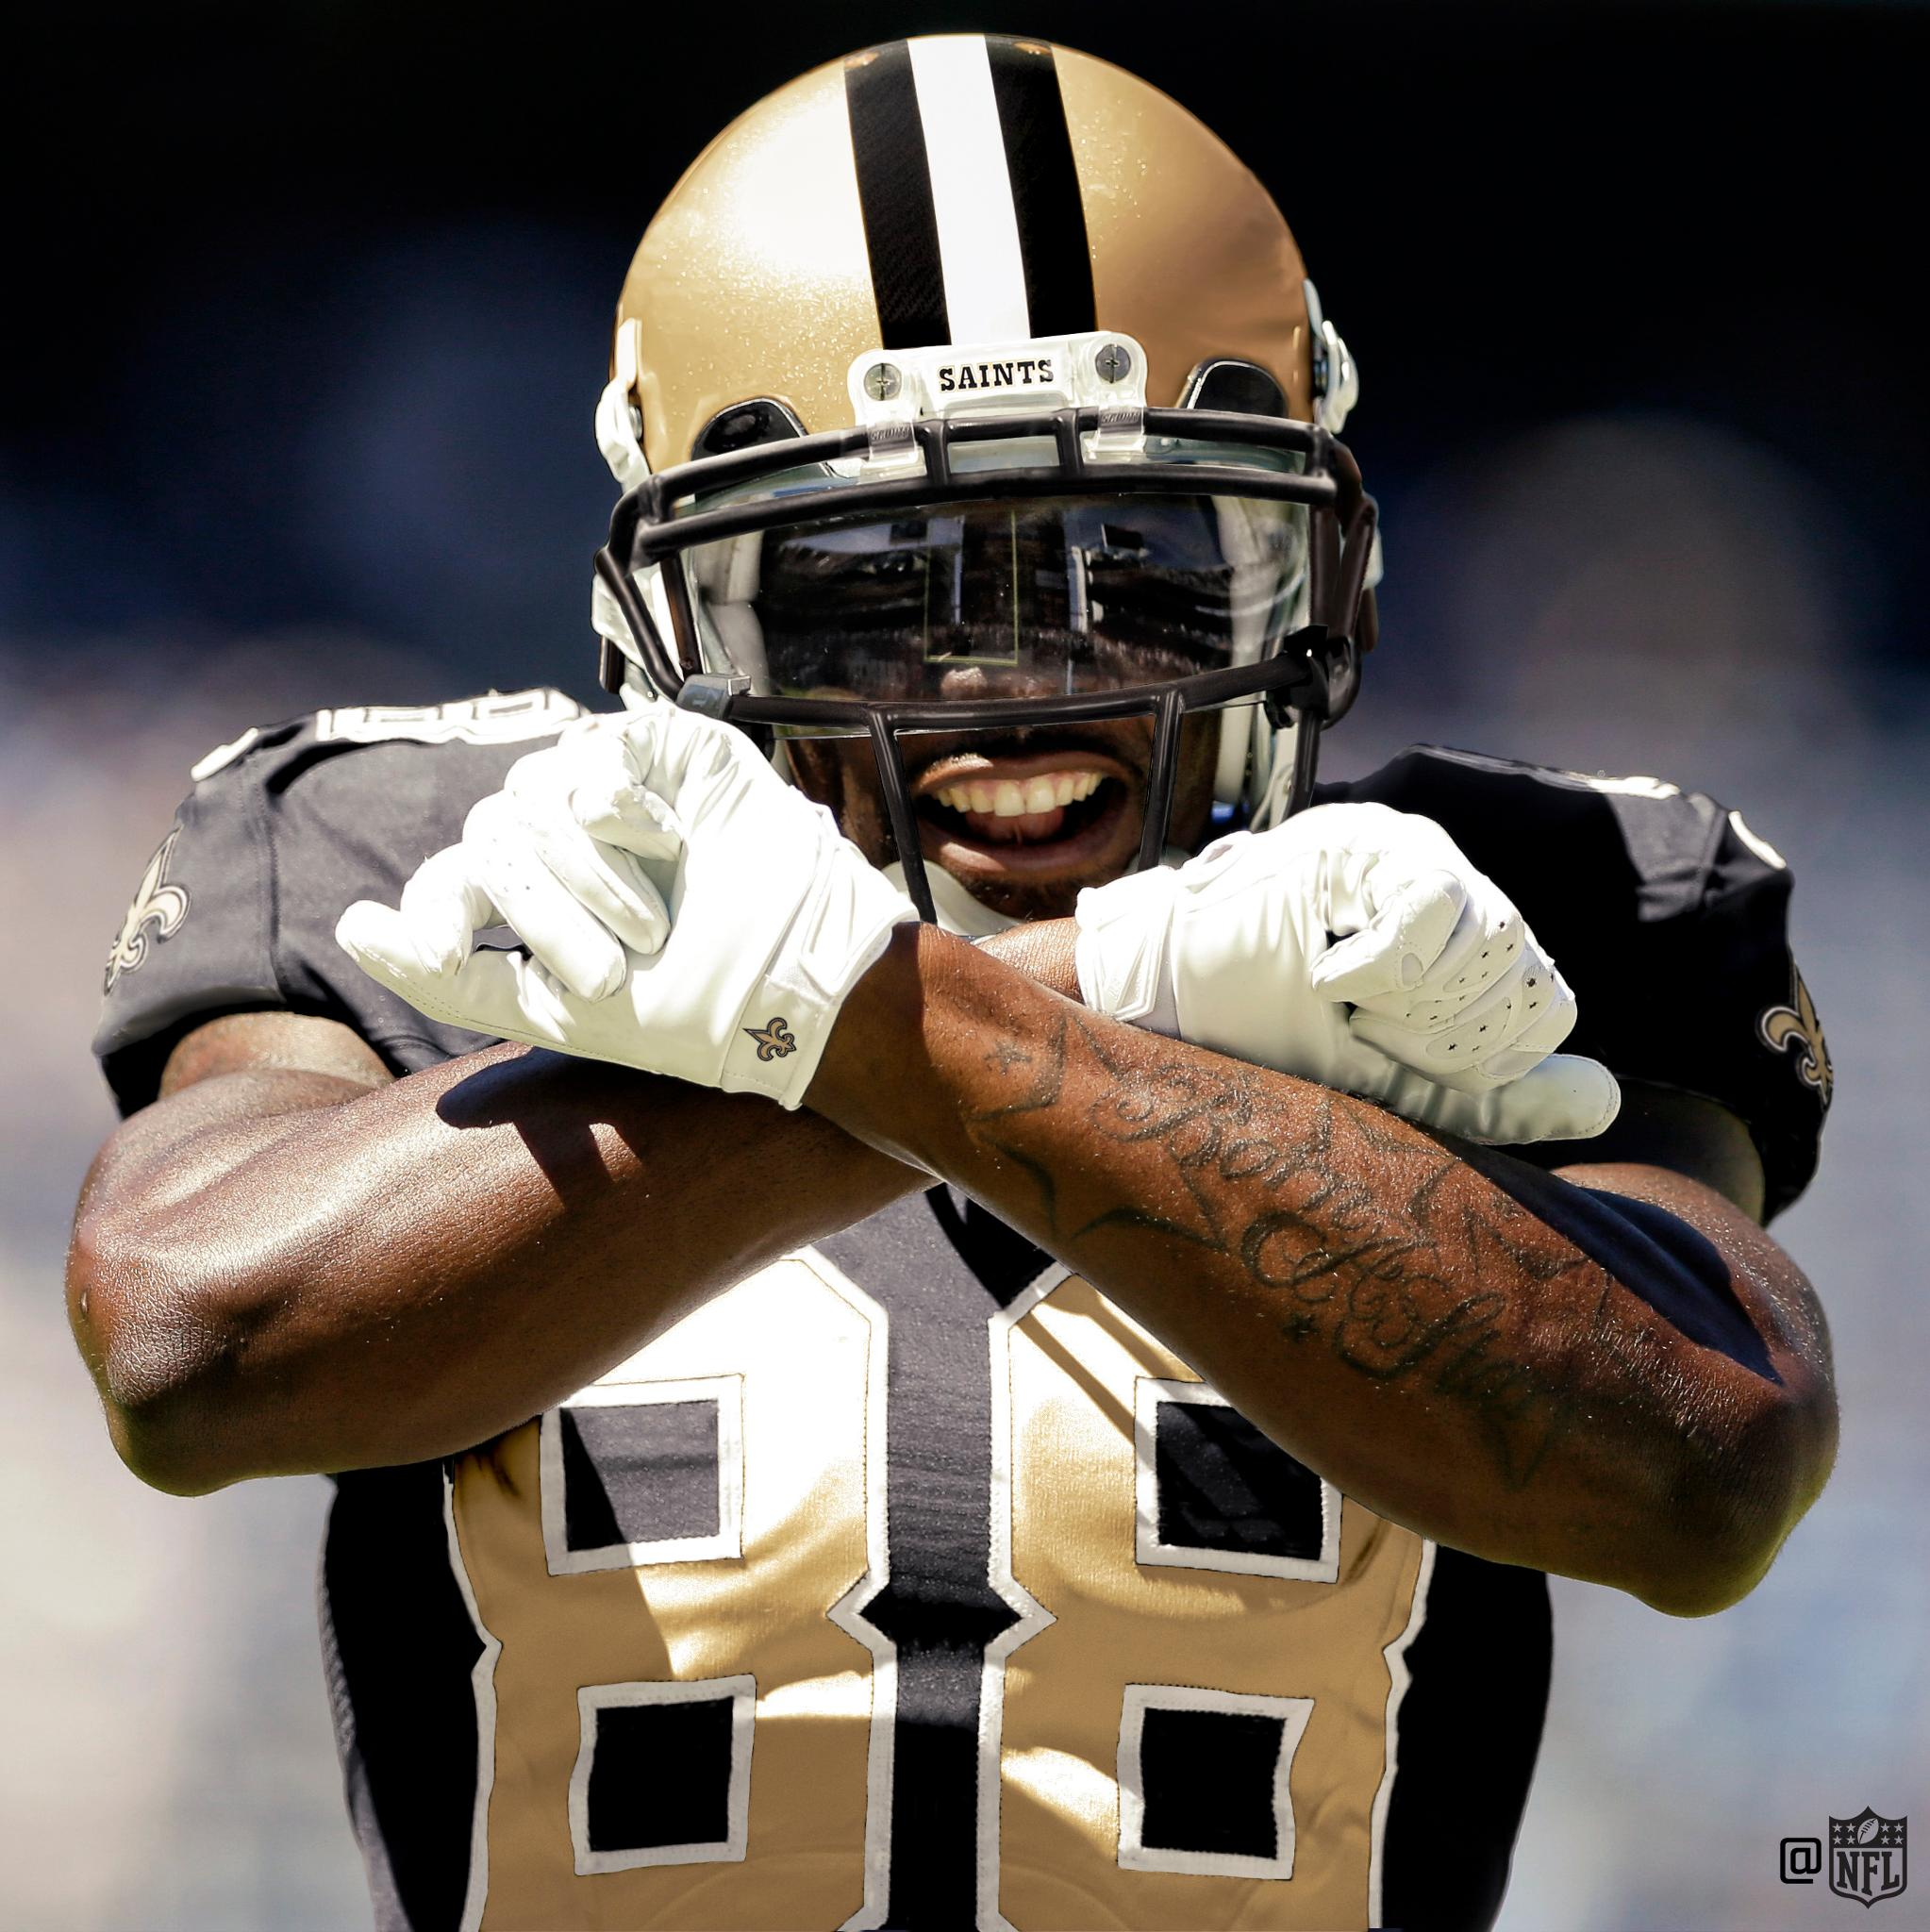 Welcome to the @Saints, @DezBryant!  #GoSaints https://t.co/Wz3ItwFh5a